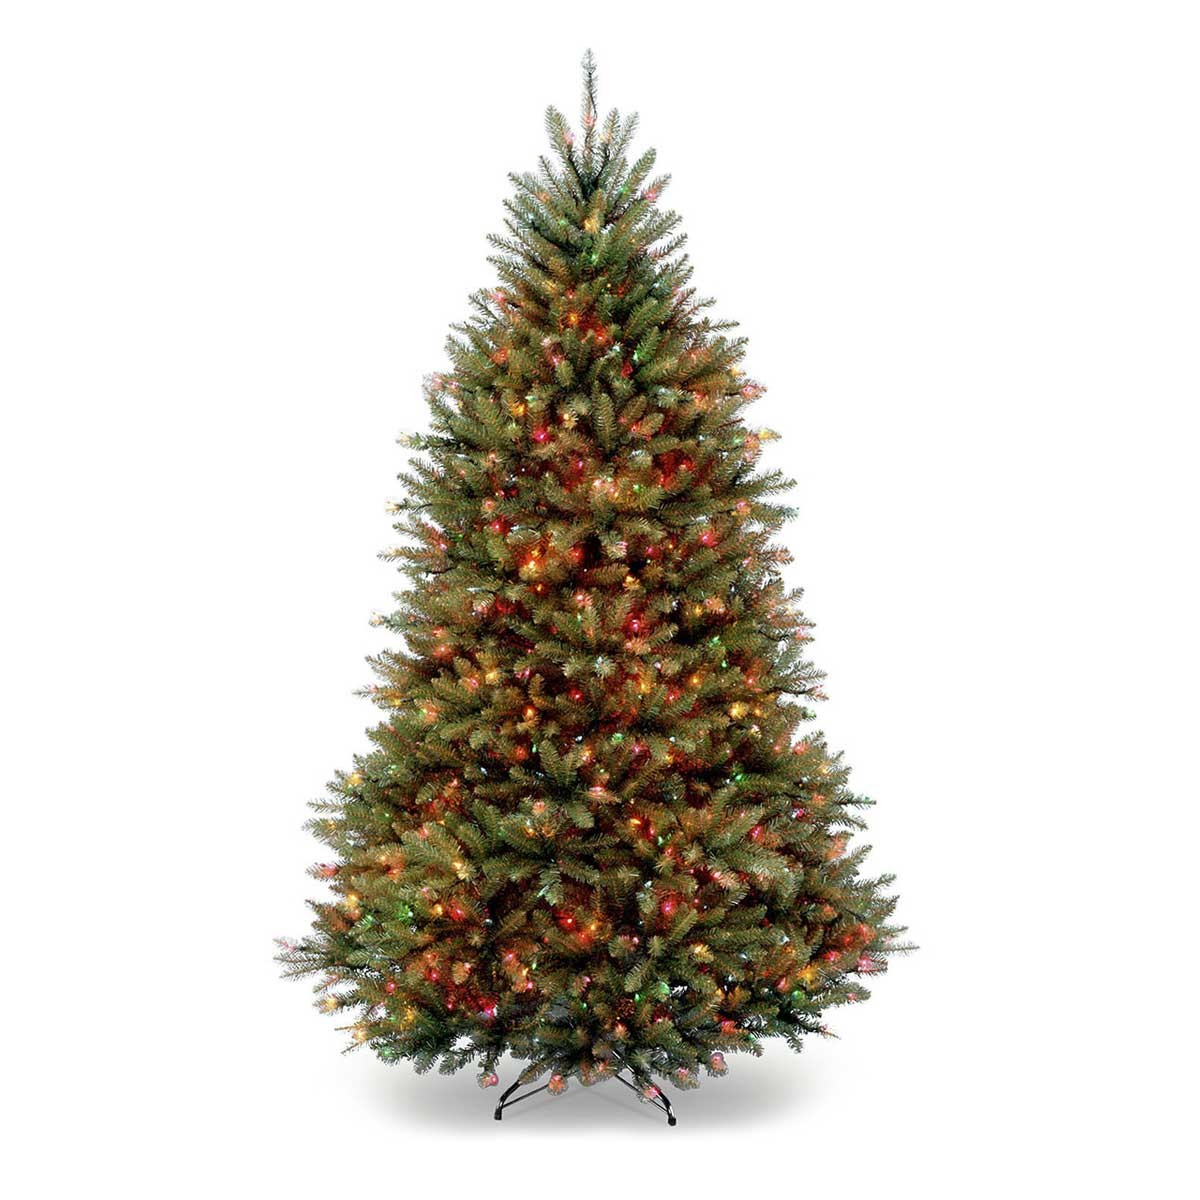 7 1/2' Dunhill Fir Hinged Tree w/ 750 multi lights